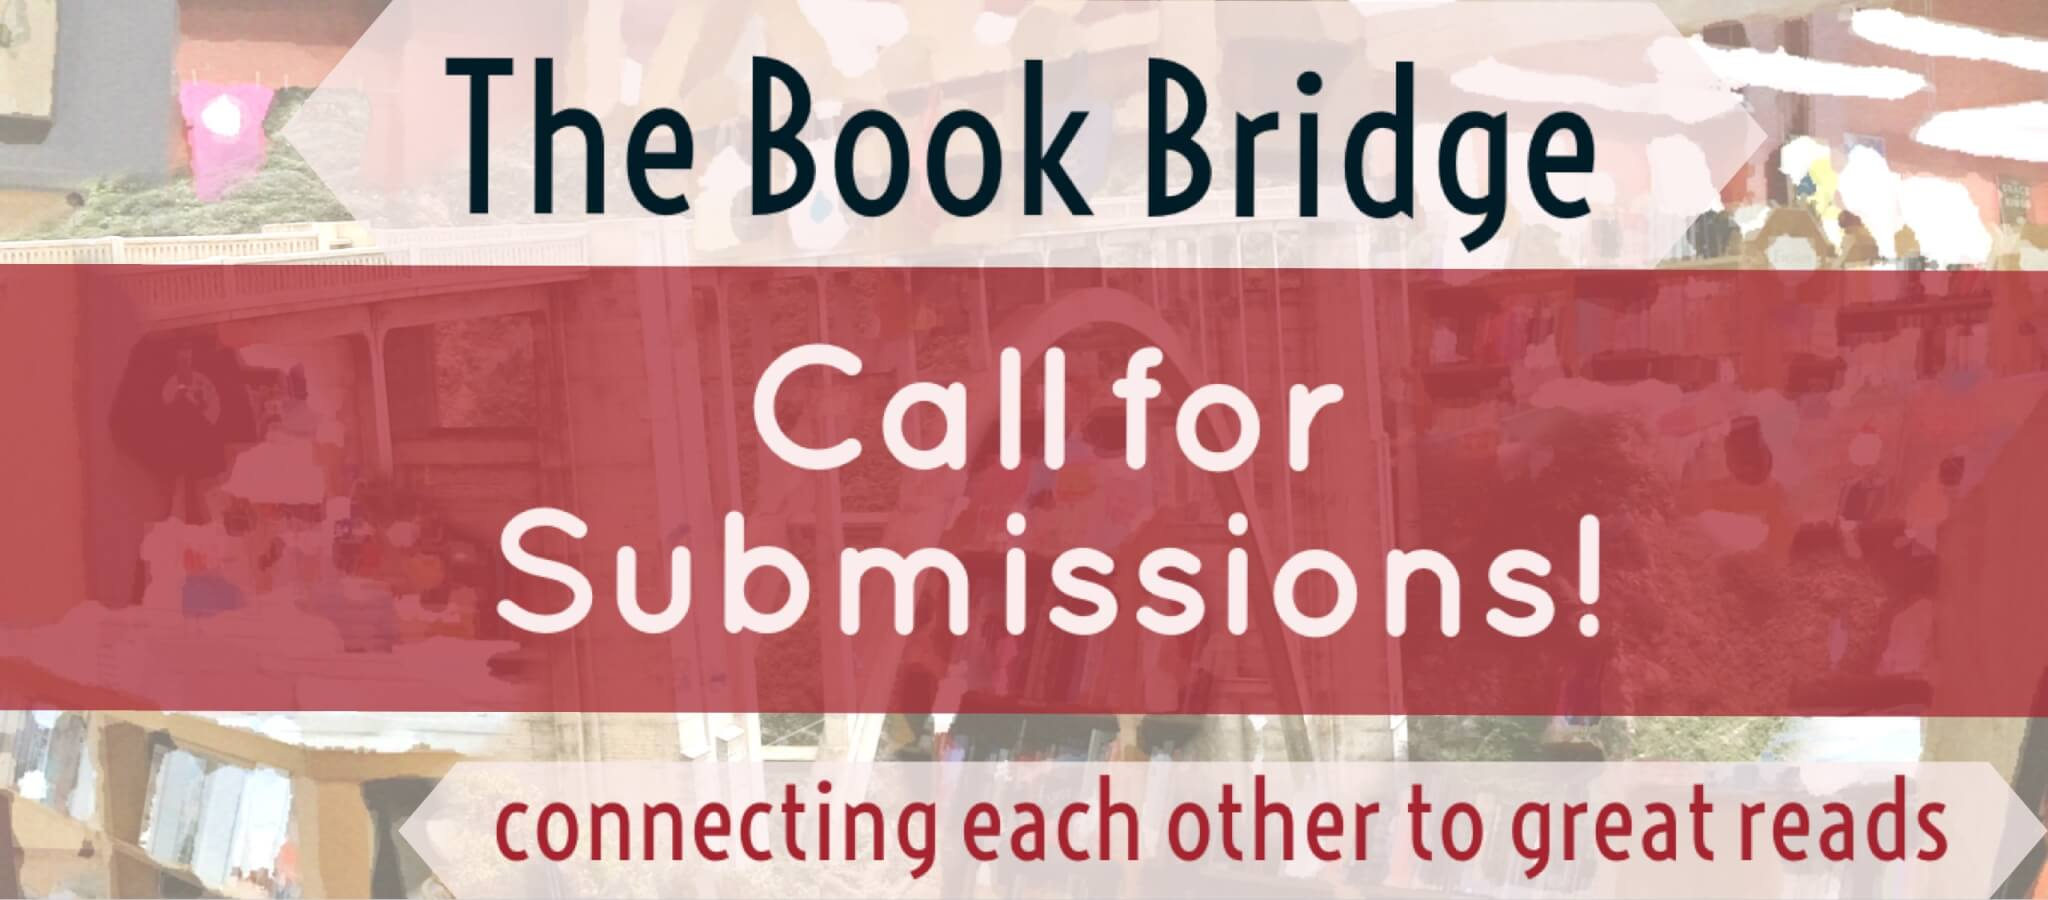 the book bridge is open call for submission